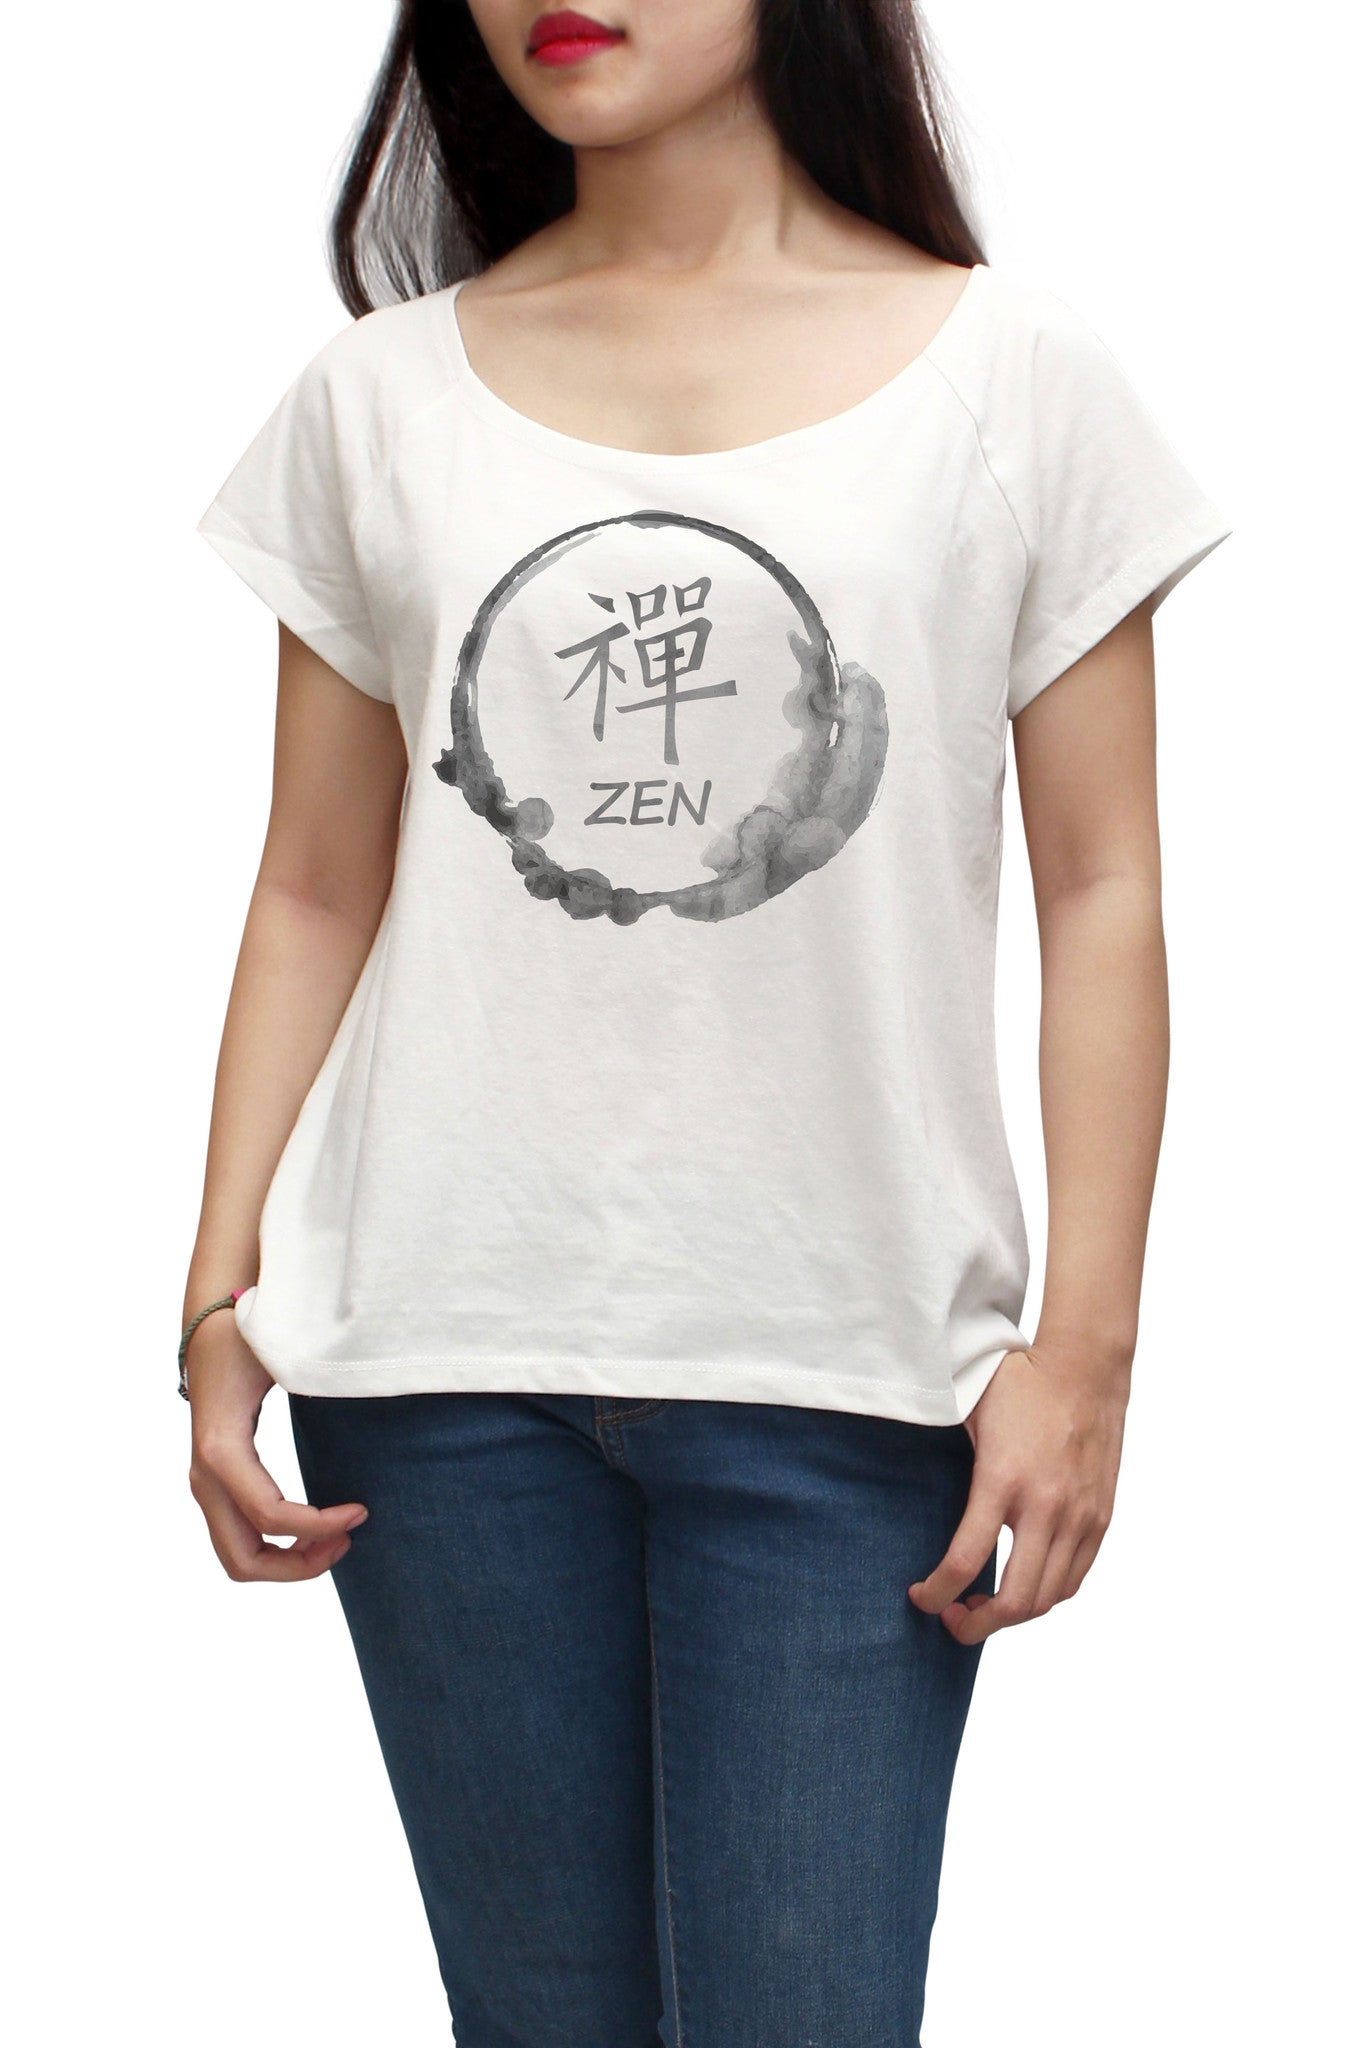 Women Zen Stamp Printed Short Sleeves T-shirt WTS_01